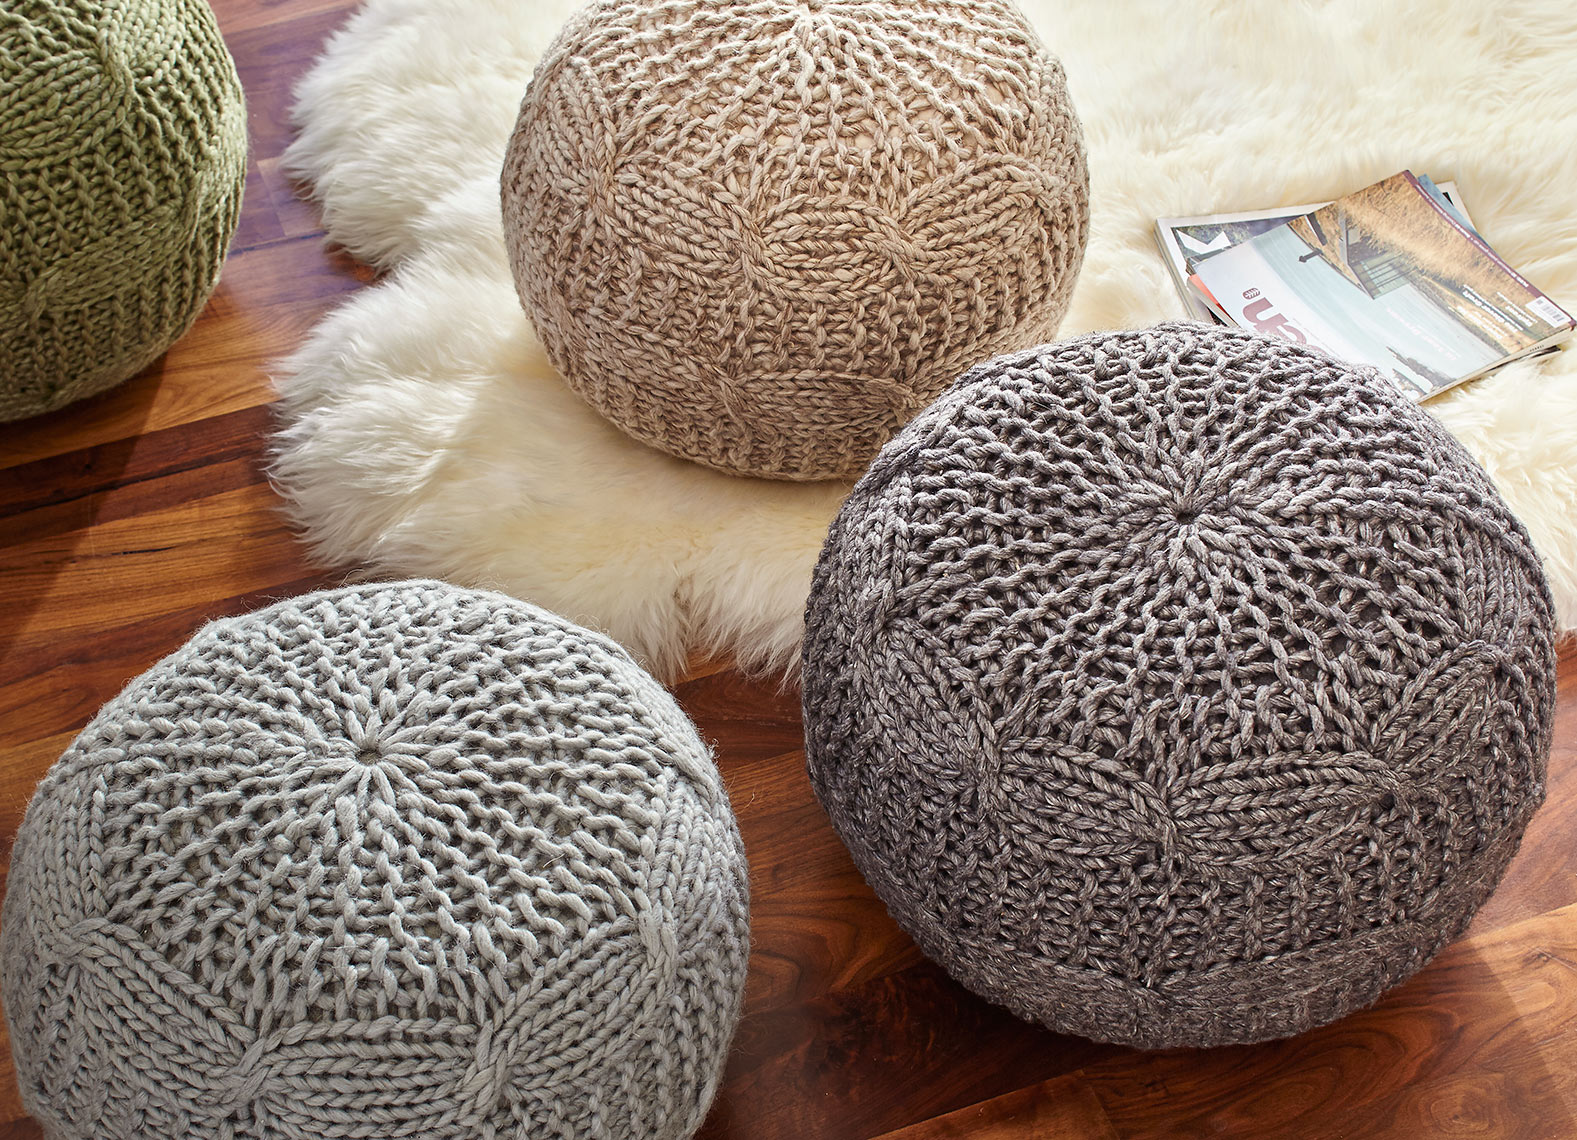 Poufs on floor